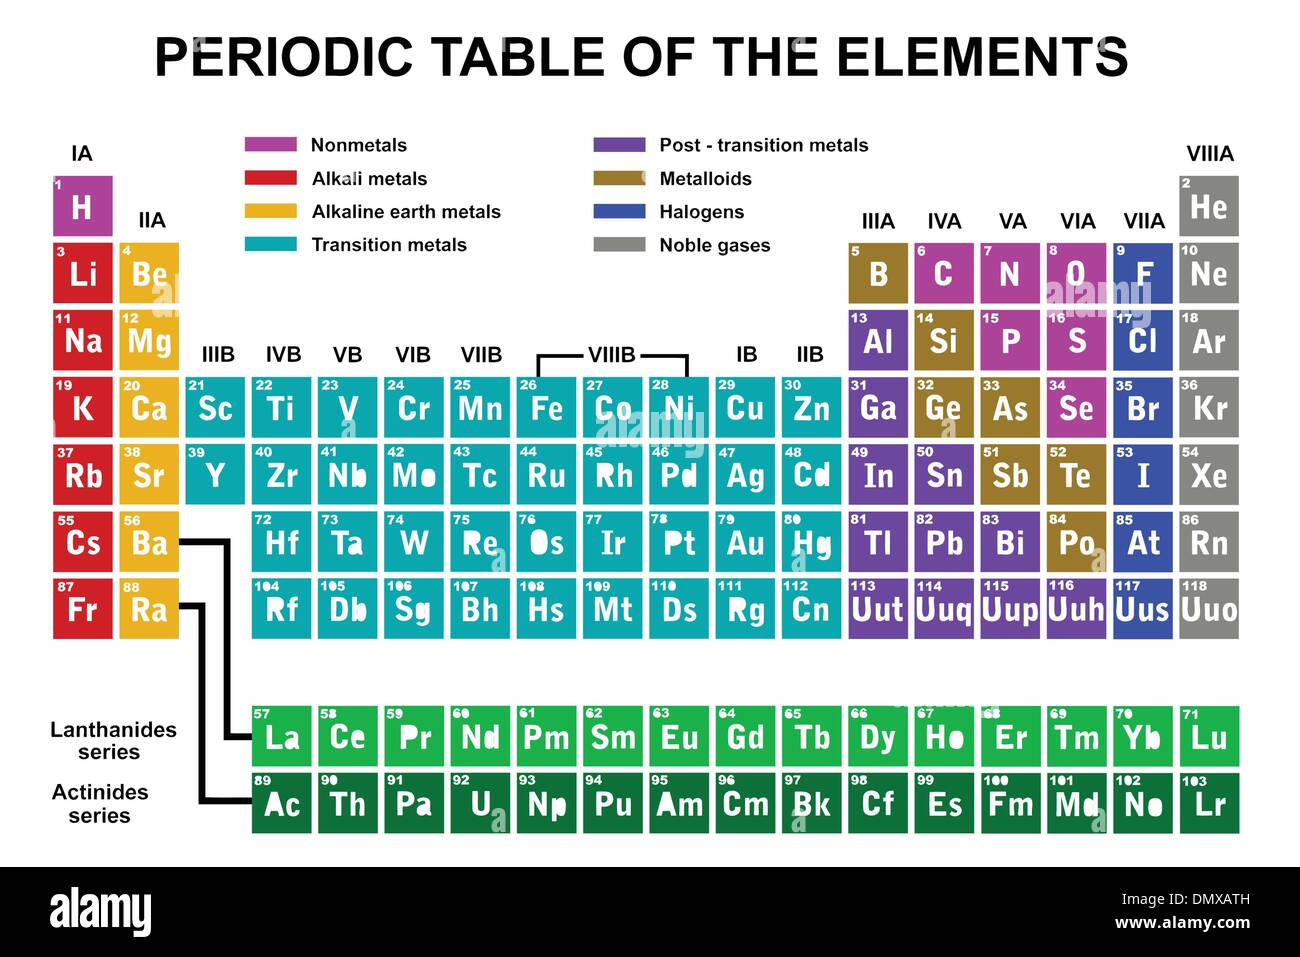 Periodic Table Of Elements Cut Out Stock Images & Pictures - Alamy